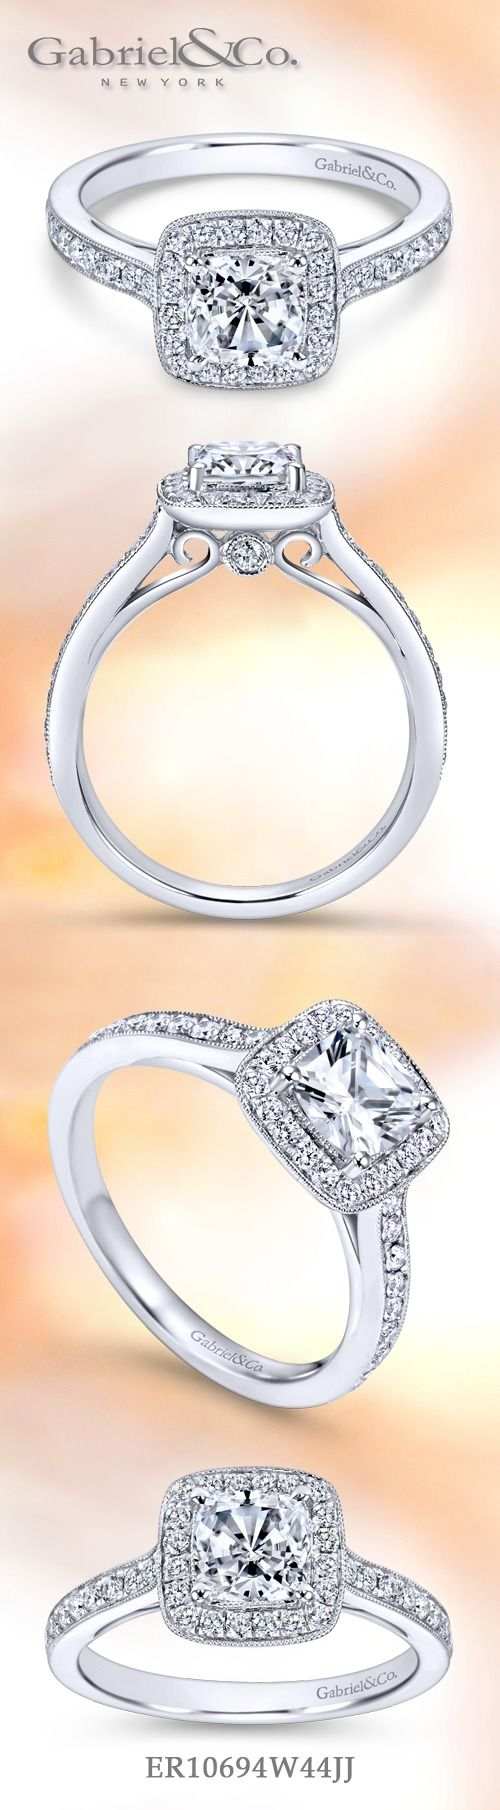 Gabriel & Co. -Voted #1 Most Preferred Fine Jewelry and Bridal Brand.  Meet Harper - 14k White Gold Cushion Cut  dazzling halo of pave diamonds  Engagement Ring accented with sophisticated scrollwork beneath your center stone.